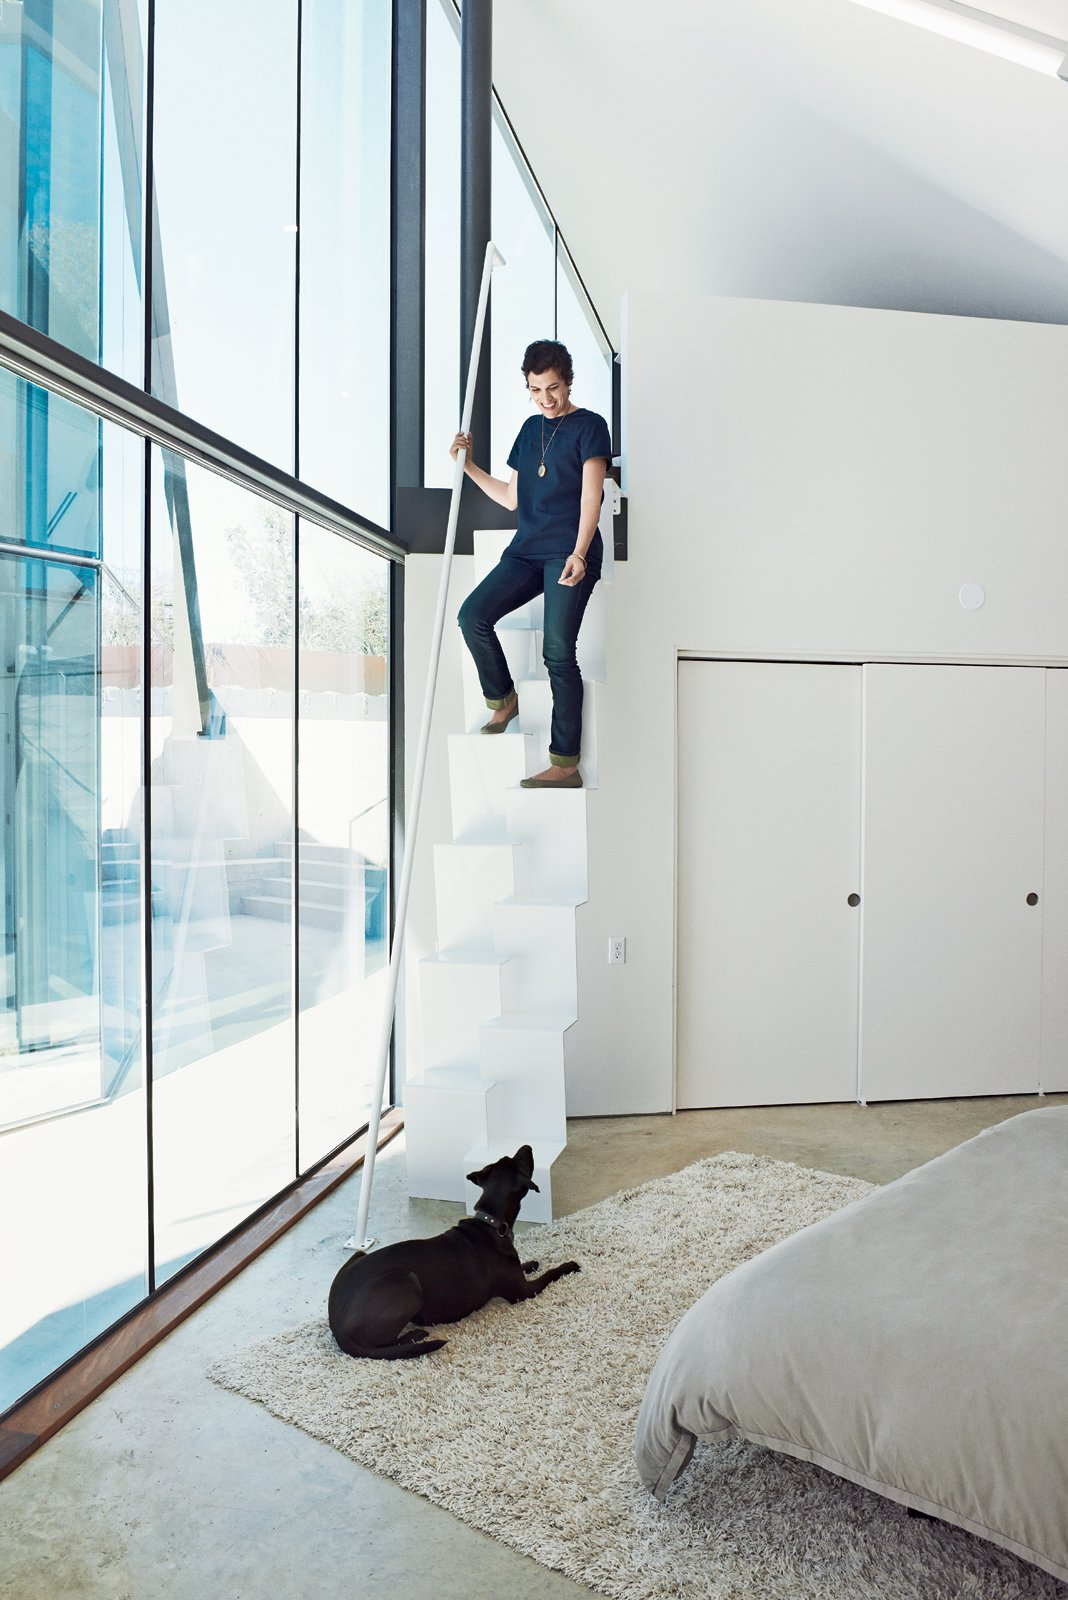 Like the pavilion holding the public spaces, the structure containing the bedrooms is clad in glass on the interior sides facing the courtyard, allowing a constant connection to the outside. Rodriguez (with dog Lupe) designed the steel stairs leading from the mezzanine-level home office to the master bedroom below. The stairs were fabricated by Austin-based Steel House MFG.  Bedrooms by Dwell from A Home Fit for a Science Fiction Writer